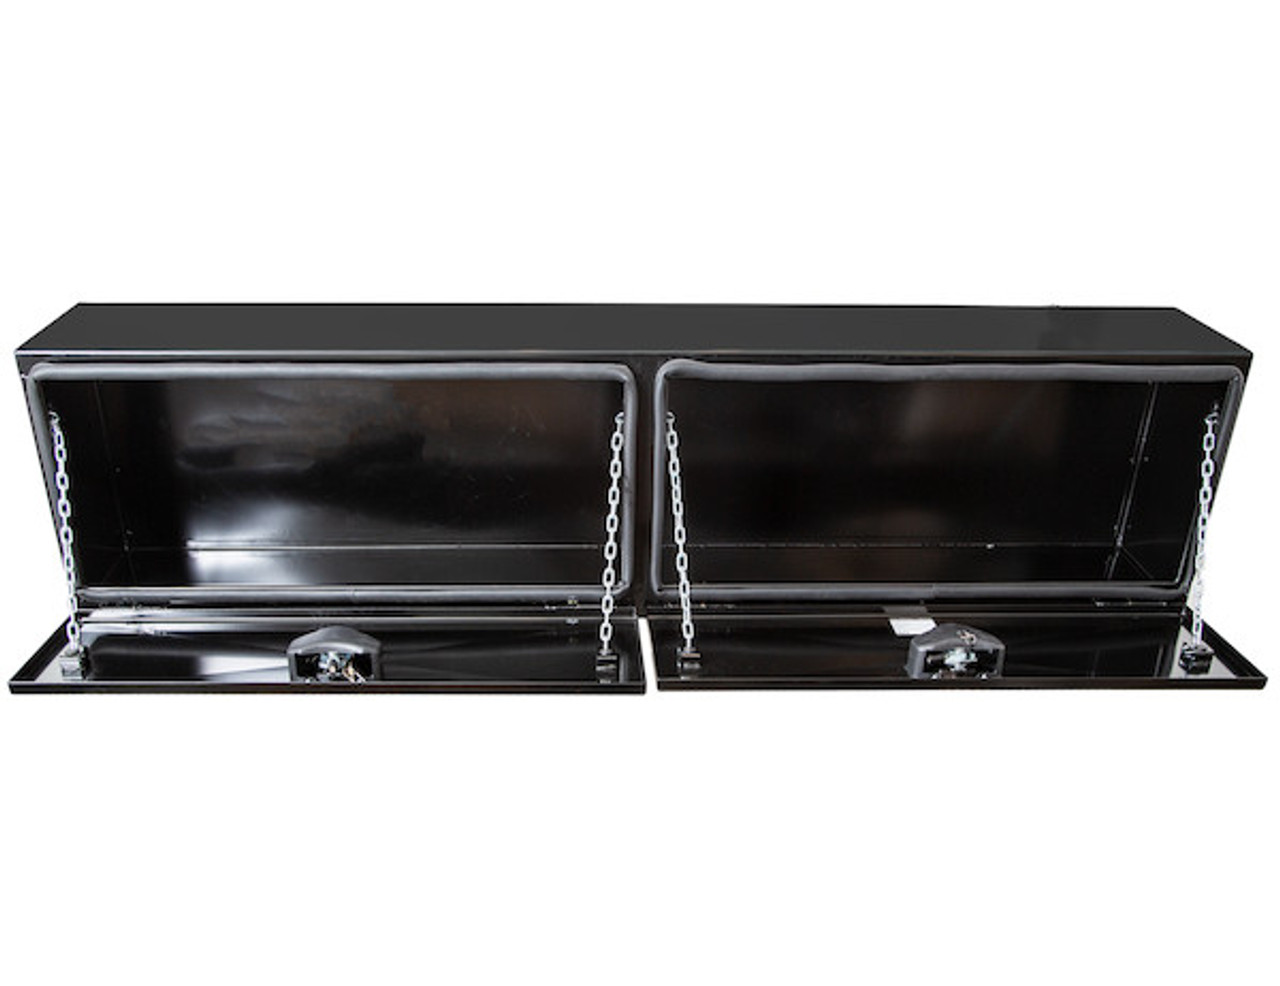 "1742336 BUYERS PRODUCTS XD BLACK STEEL UNDERBODY HEAVY DUTY TRUCK TOOLBOX 18""Hx18""Dx96""W"